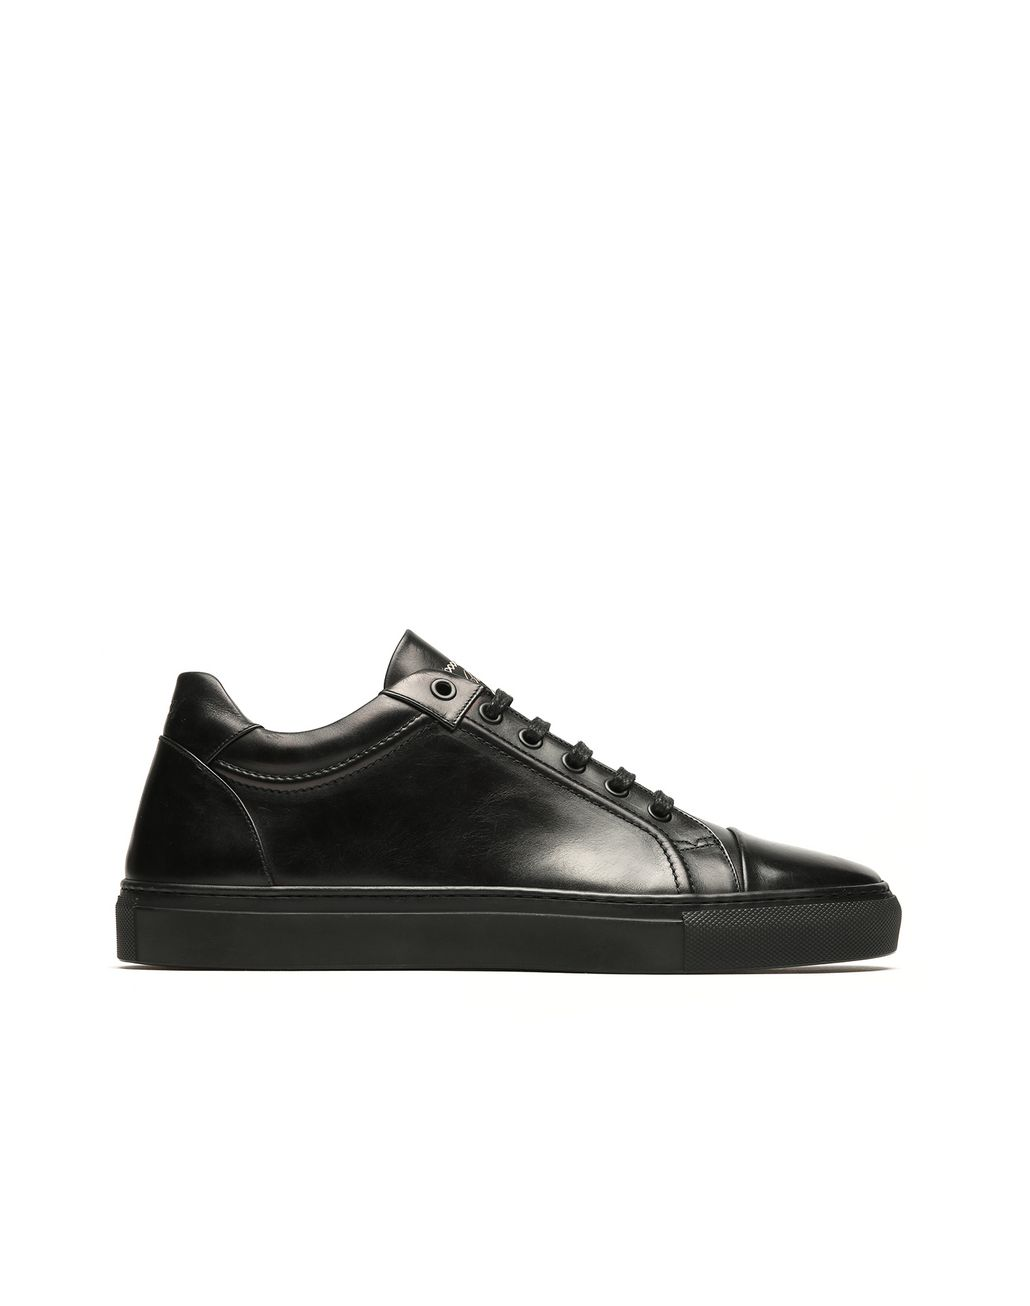 BRIONI Black Leather Sneakers Sneakers Man f